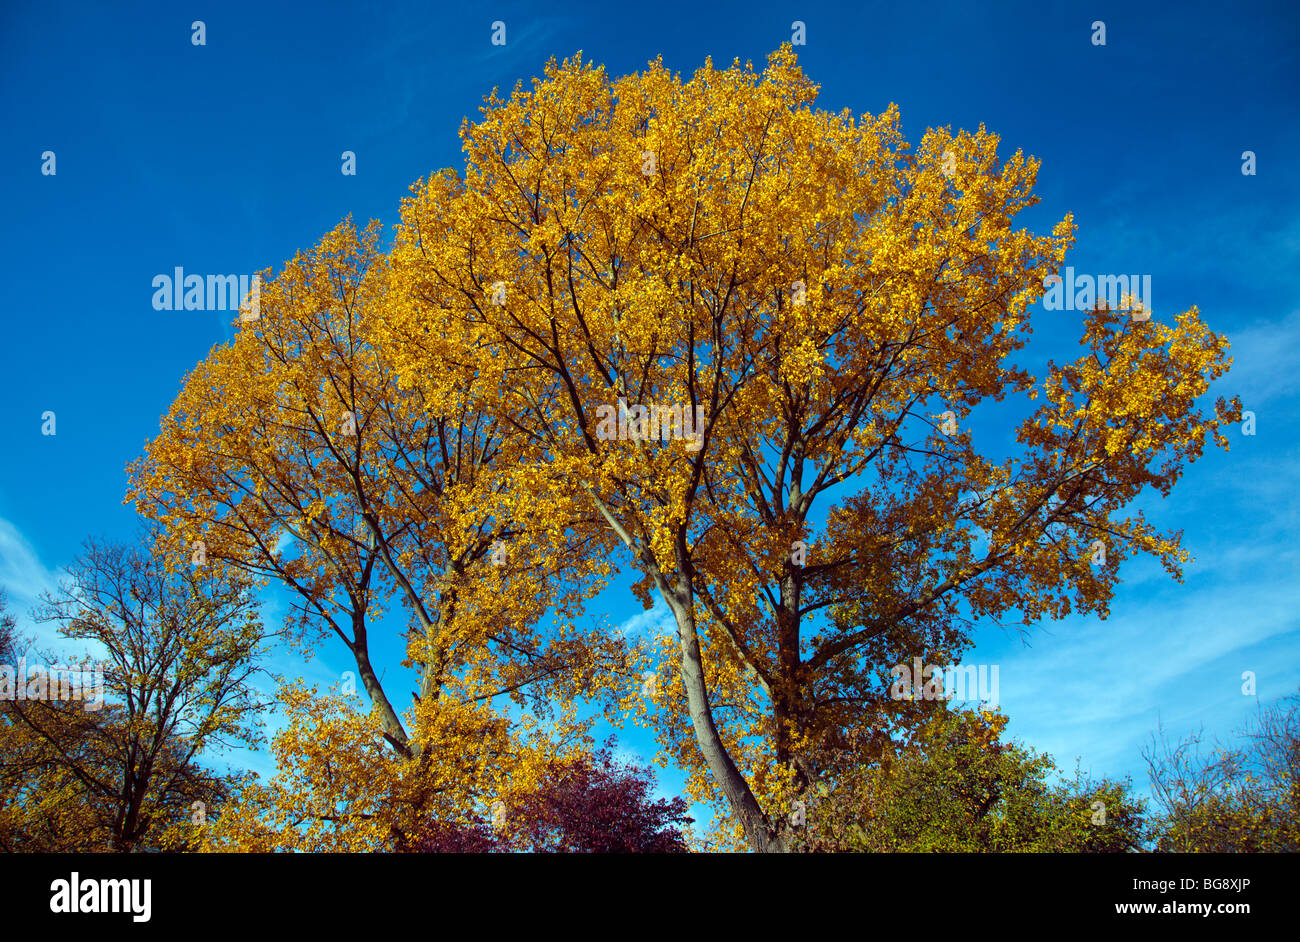 Autumn leaves against a blue sky Oxfordshire England UK - Stock Image